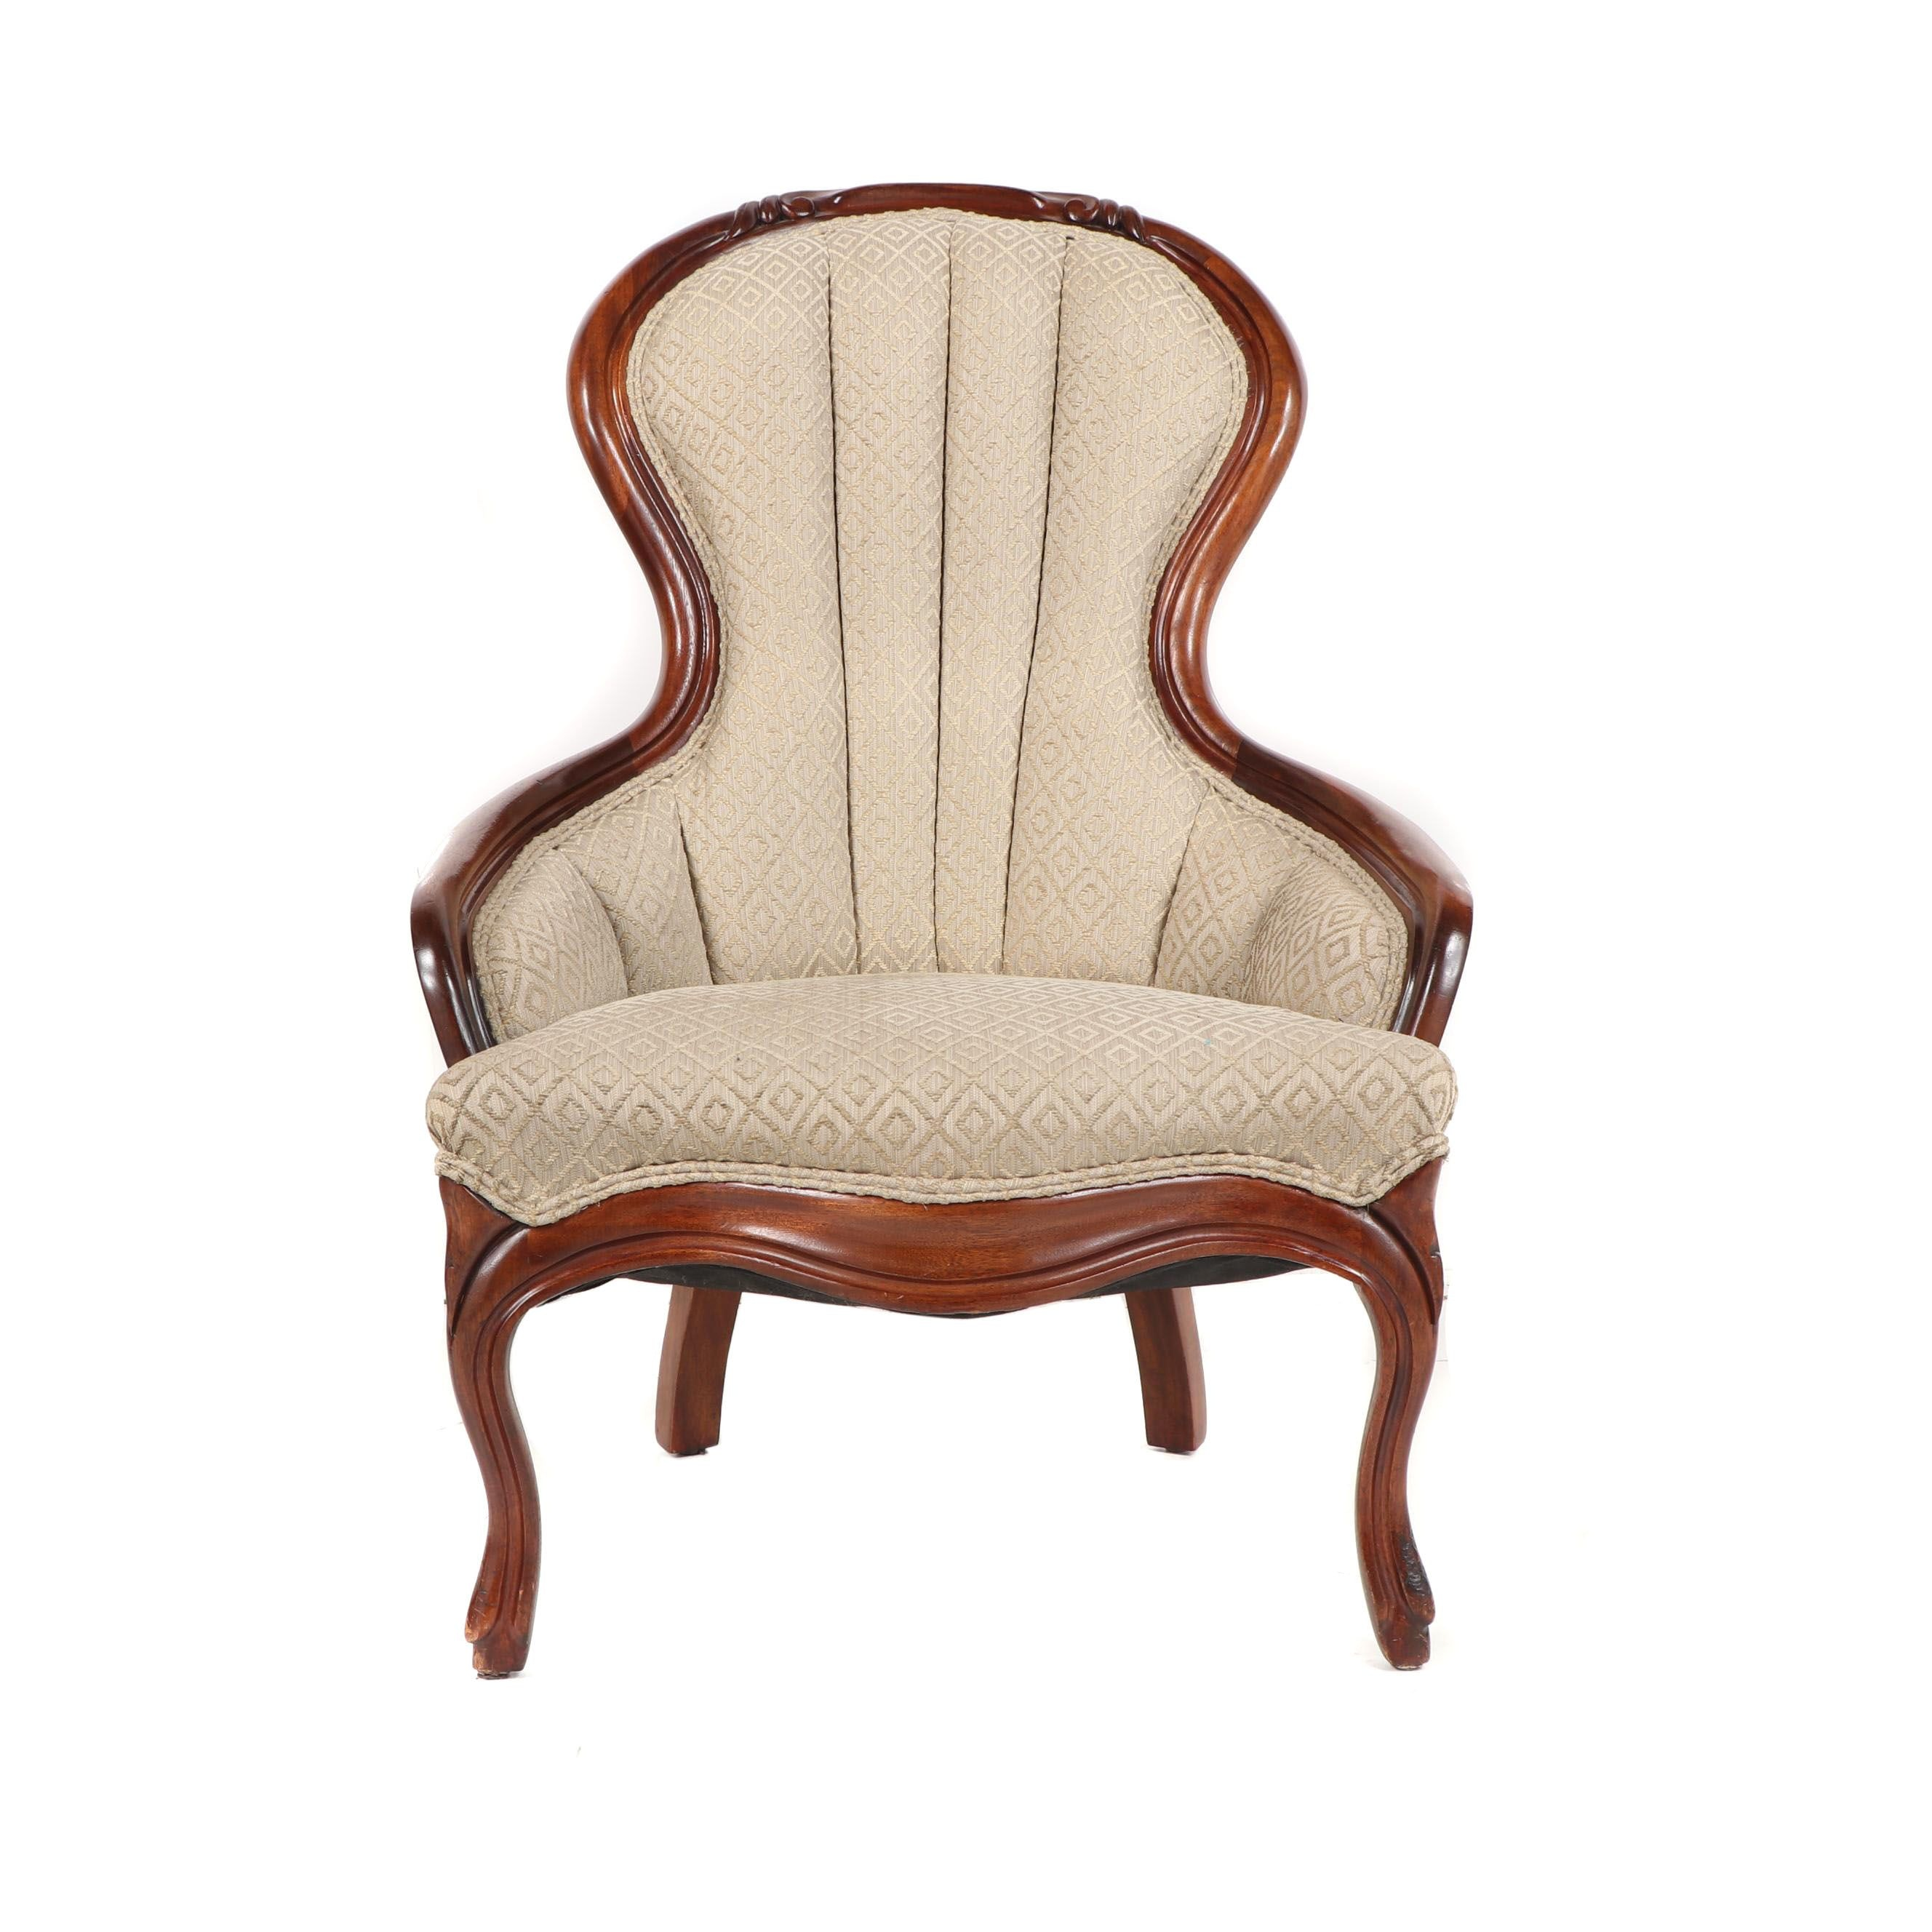 Victorian Style Mahogany Frame Upholstered Chair, 20th Century